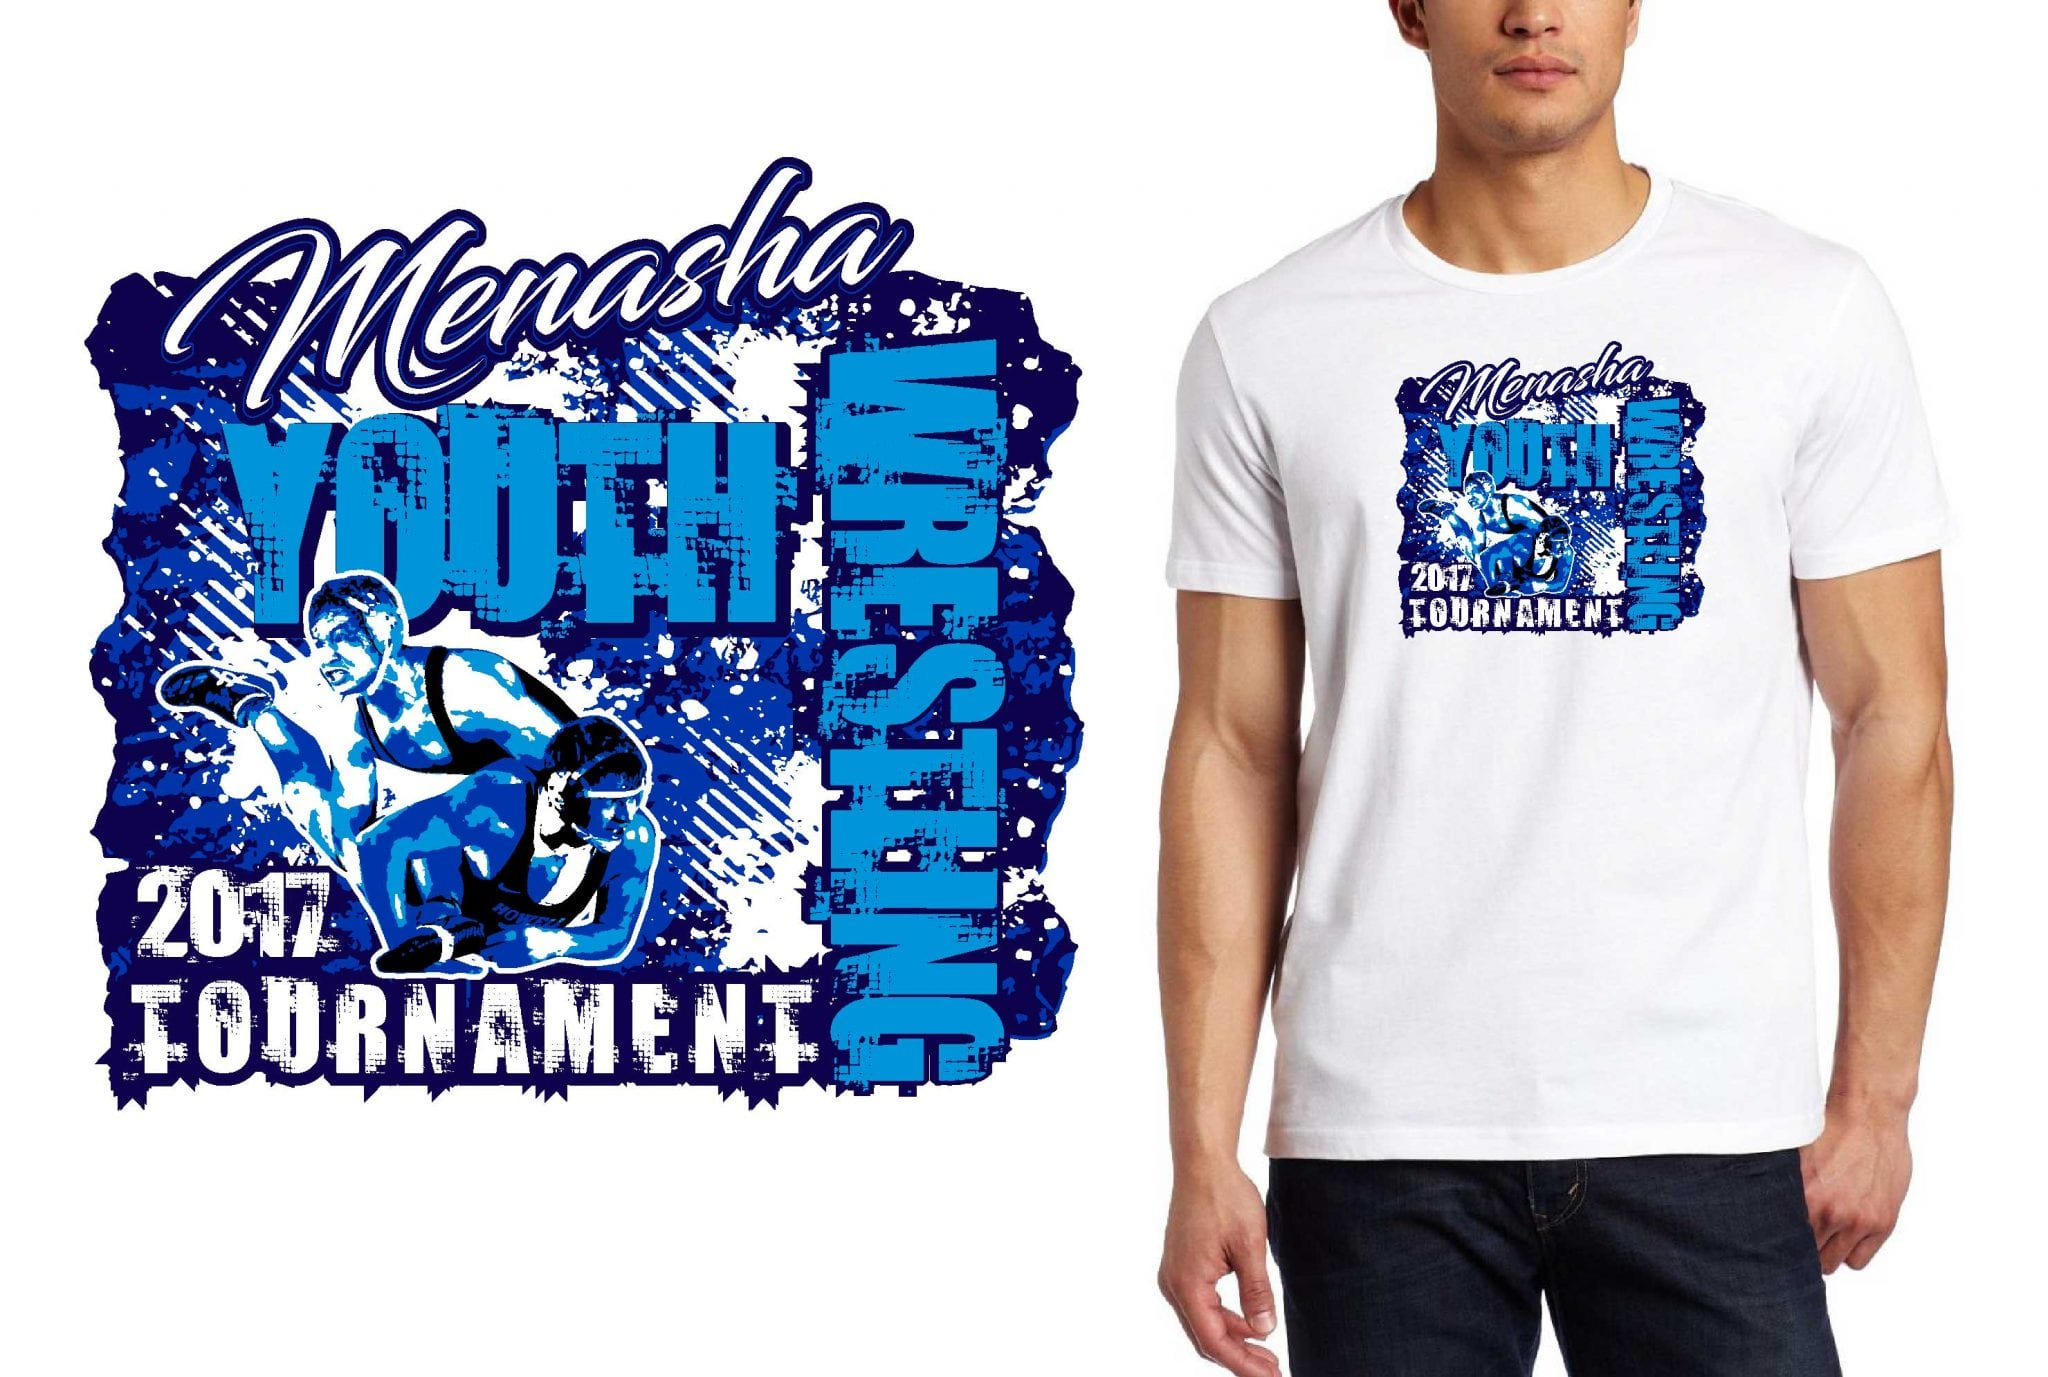 WRESTLING LOGO for Menasha-Youth-Wrestling-Tournament T-SHIRT UrArtStudio